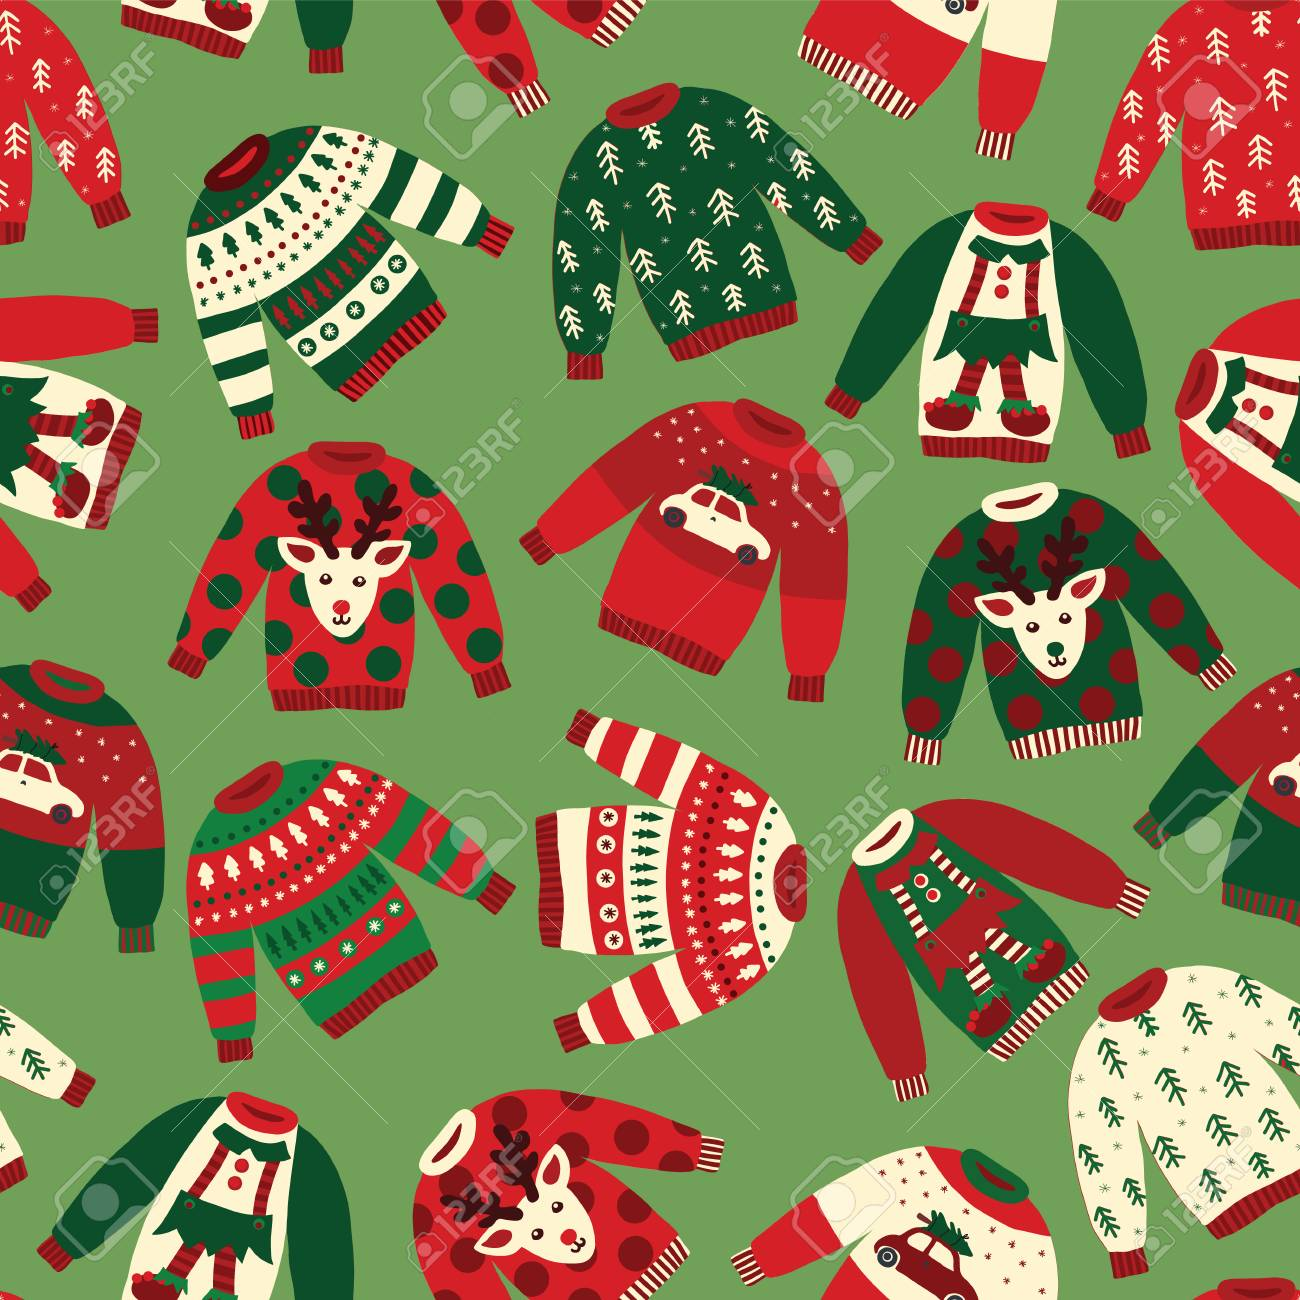 Ugly Christmas Sweaters Patterns.Ugly Christmas Sweaters Seamless Vector Pattern Knitted Winter